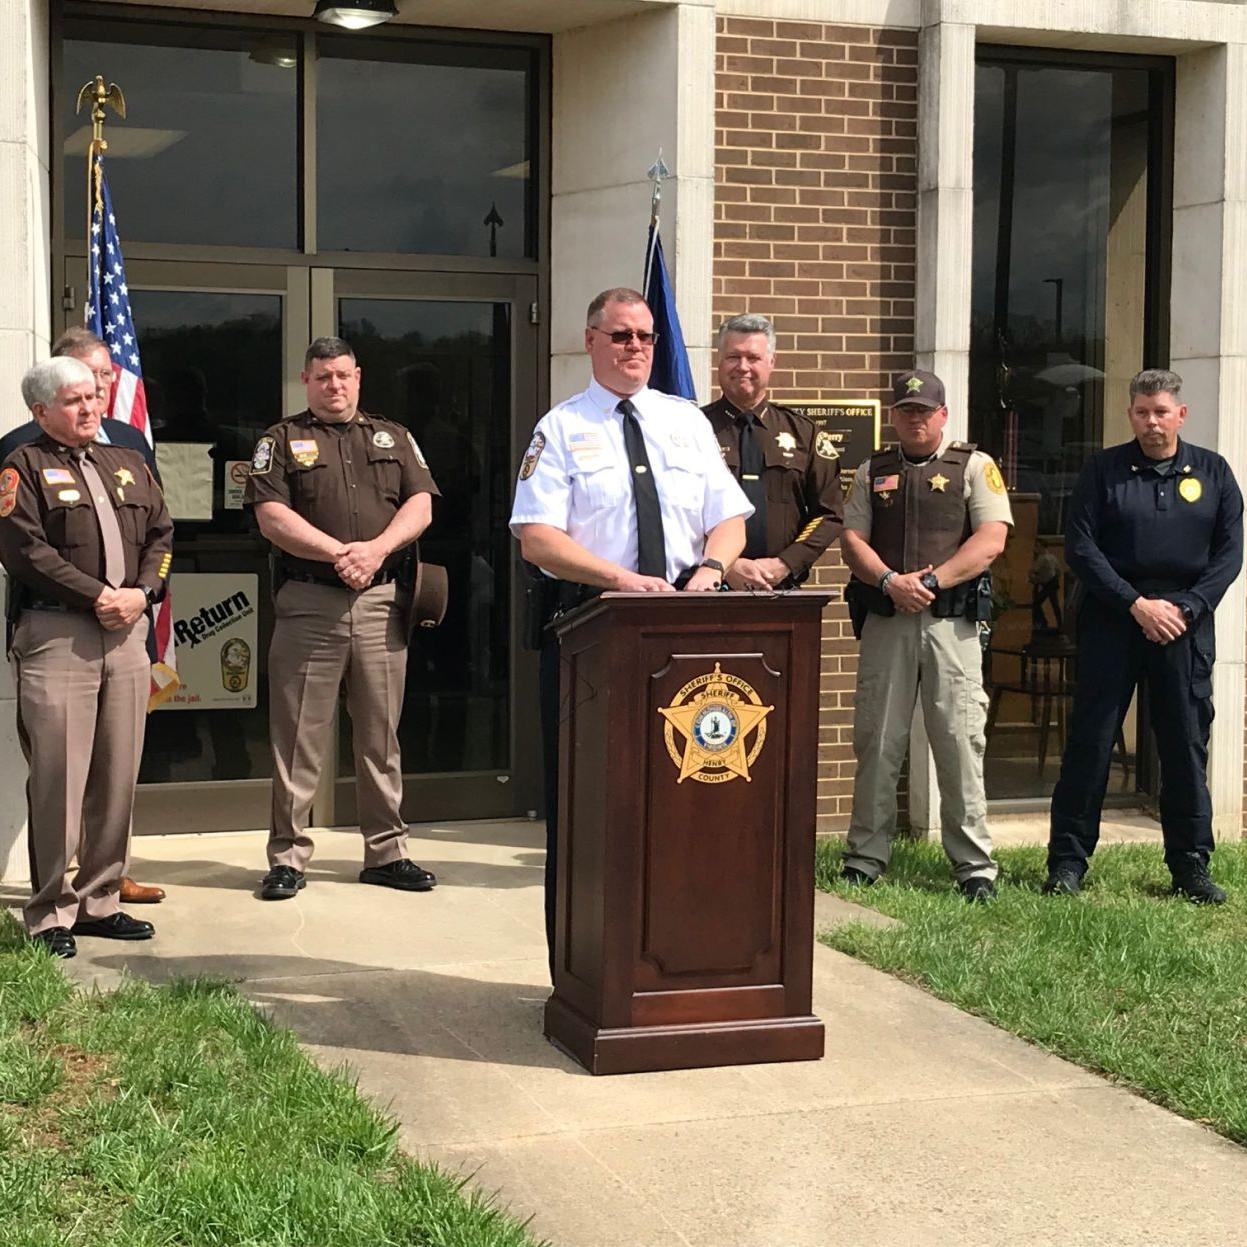 Henry County Sheriff Lane Perry's news event raises